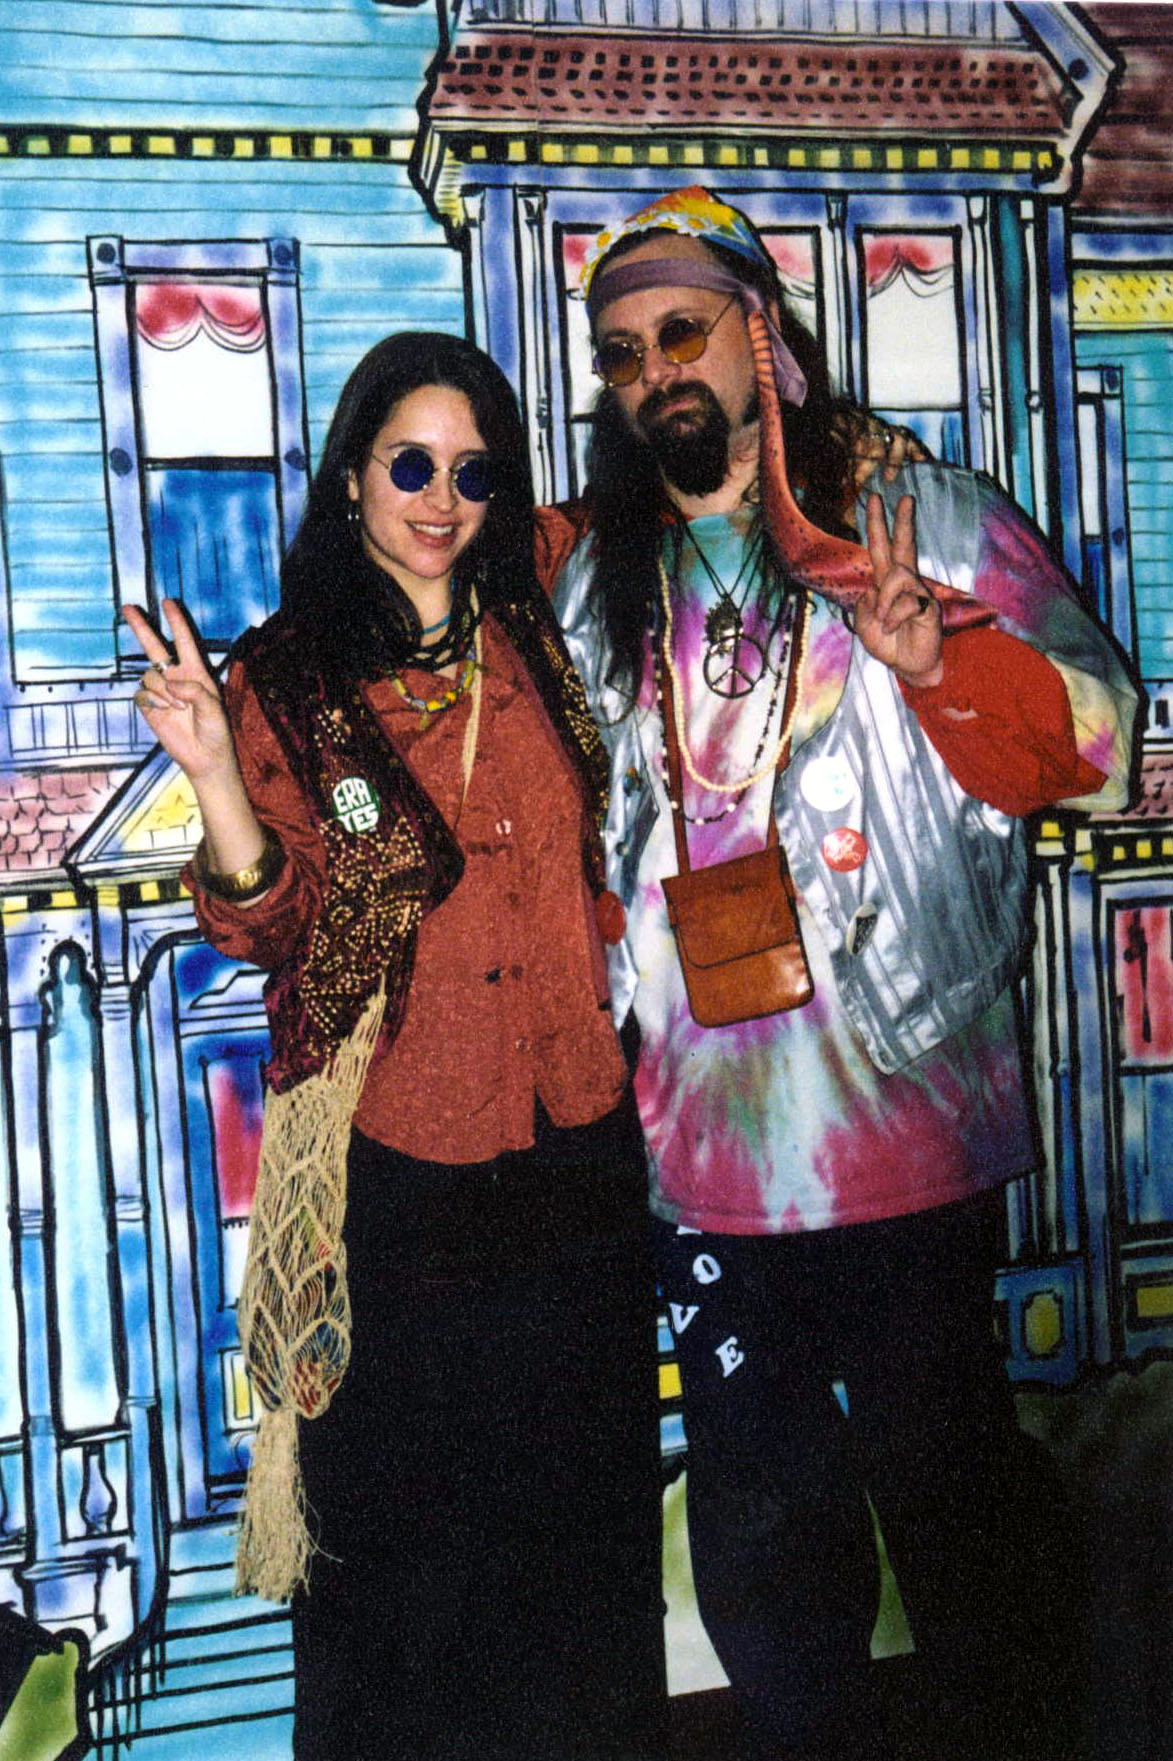 Brian-and-Carla-as-hippies-01